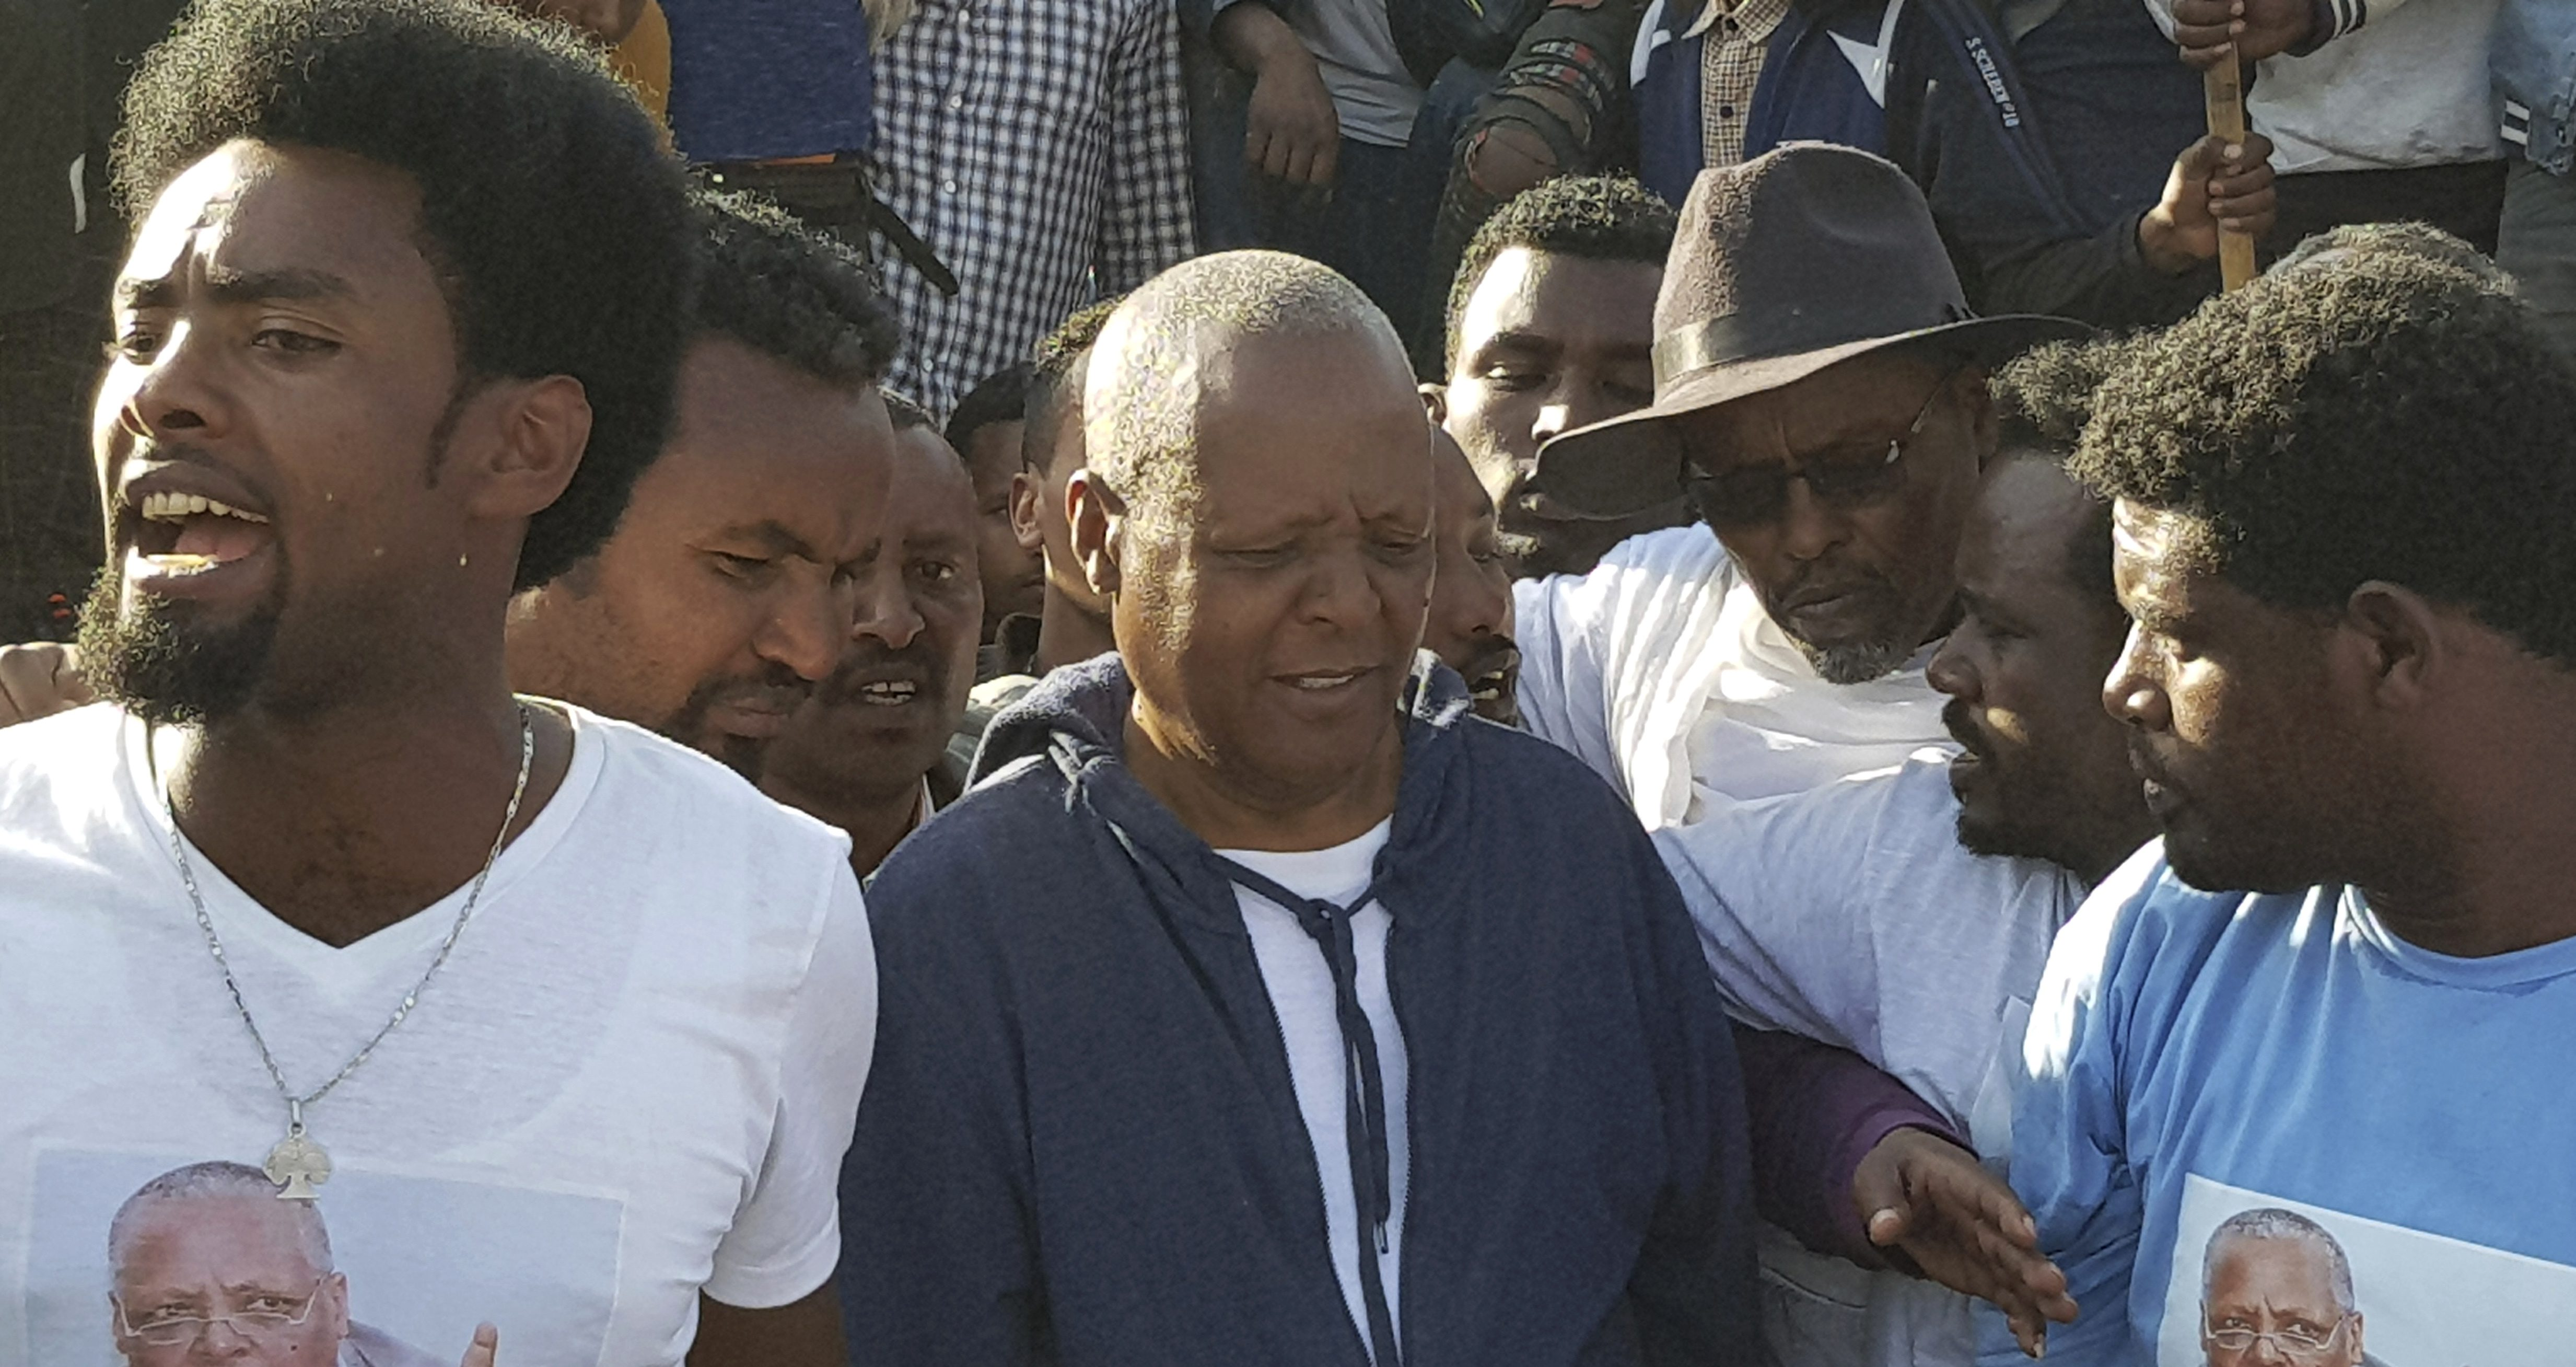 """Opposition leader Merara Gudina, centre, walks with his supporters after his release, in Burayu, Ethiopia, Wednesday, Jan. 17 2018. Ethiopia's top opposition figure and hundreds of others were released from prison on Wednesday as part of the government's recent pledge to free detained politicians and """"widen the democratic space for all"""" after the worst anti-government protests in a quarter-century. Gudina led the Oromo Federalist Congress party and was arrested a year ago under the country's state of emergency after he returned from Europe, where he had briefed European lawmakers on widespread and sometimes deadly anti-government protests."""